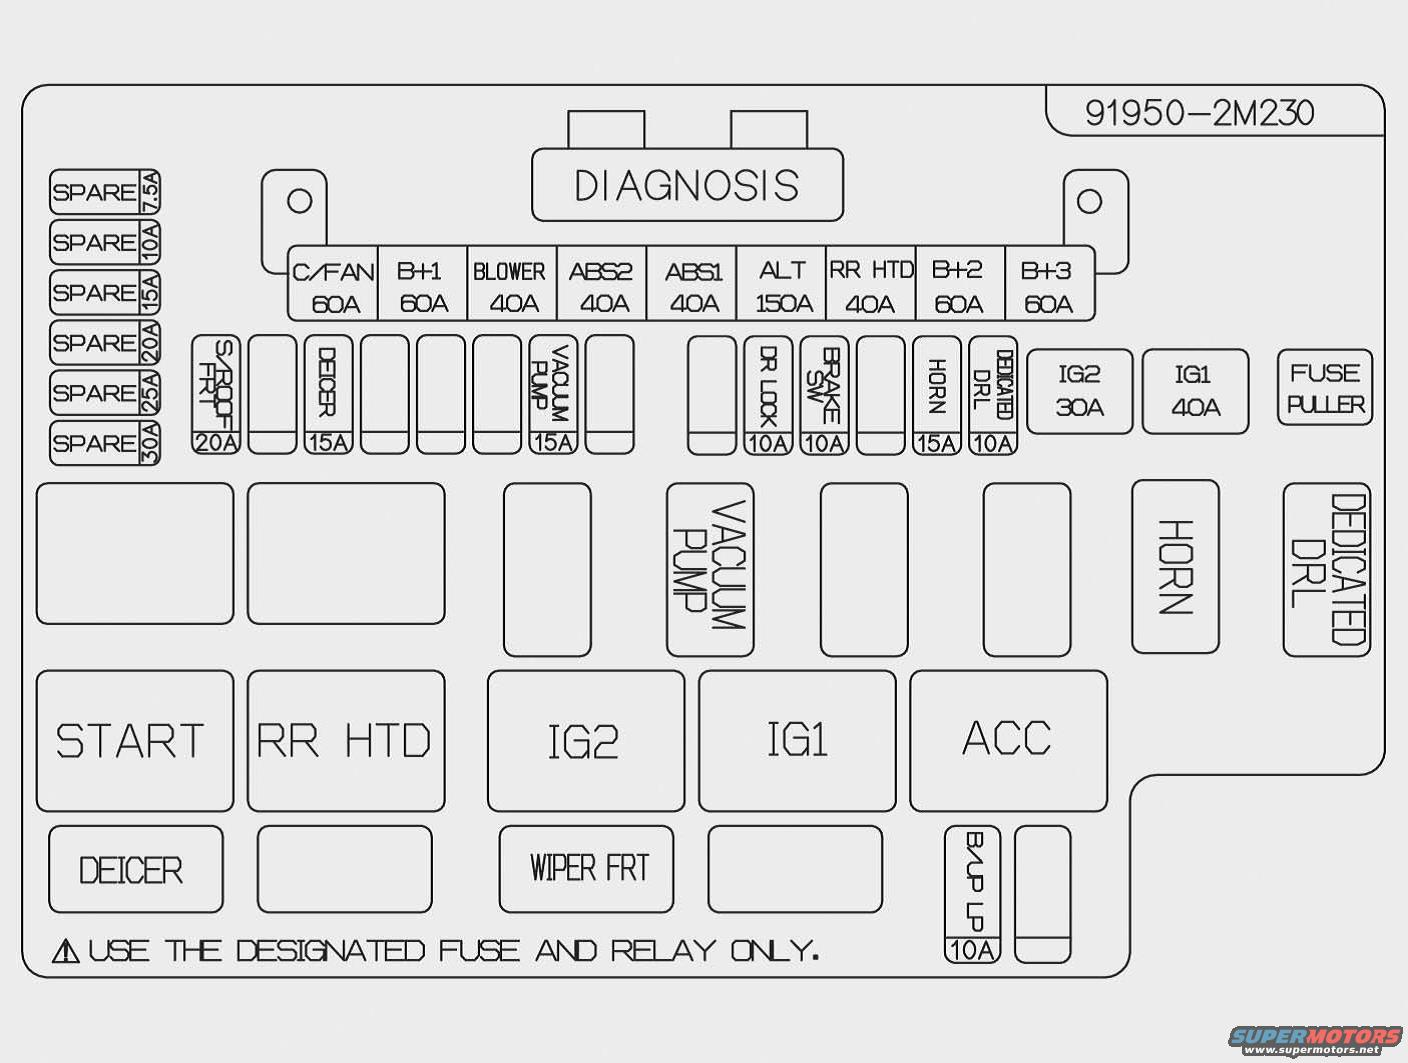 2013 Hyundai Fuse Box Location Wiring Diagram Data 06 Elantra Diagrams Genesis Library 2006 Panel